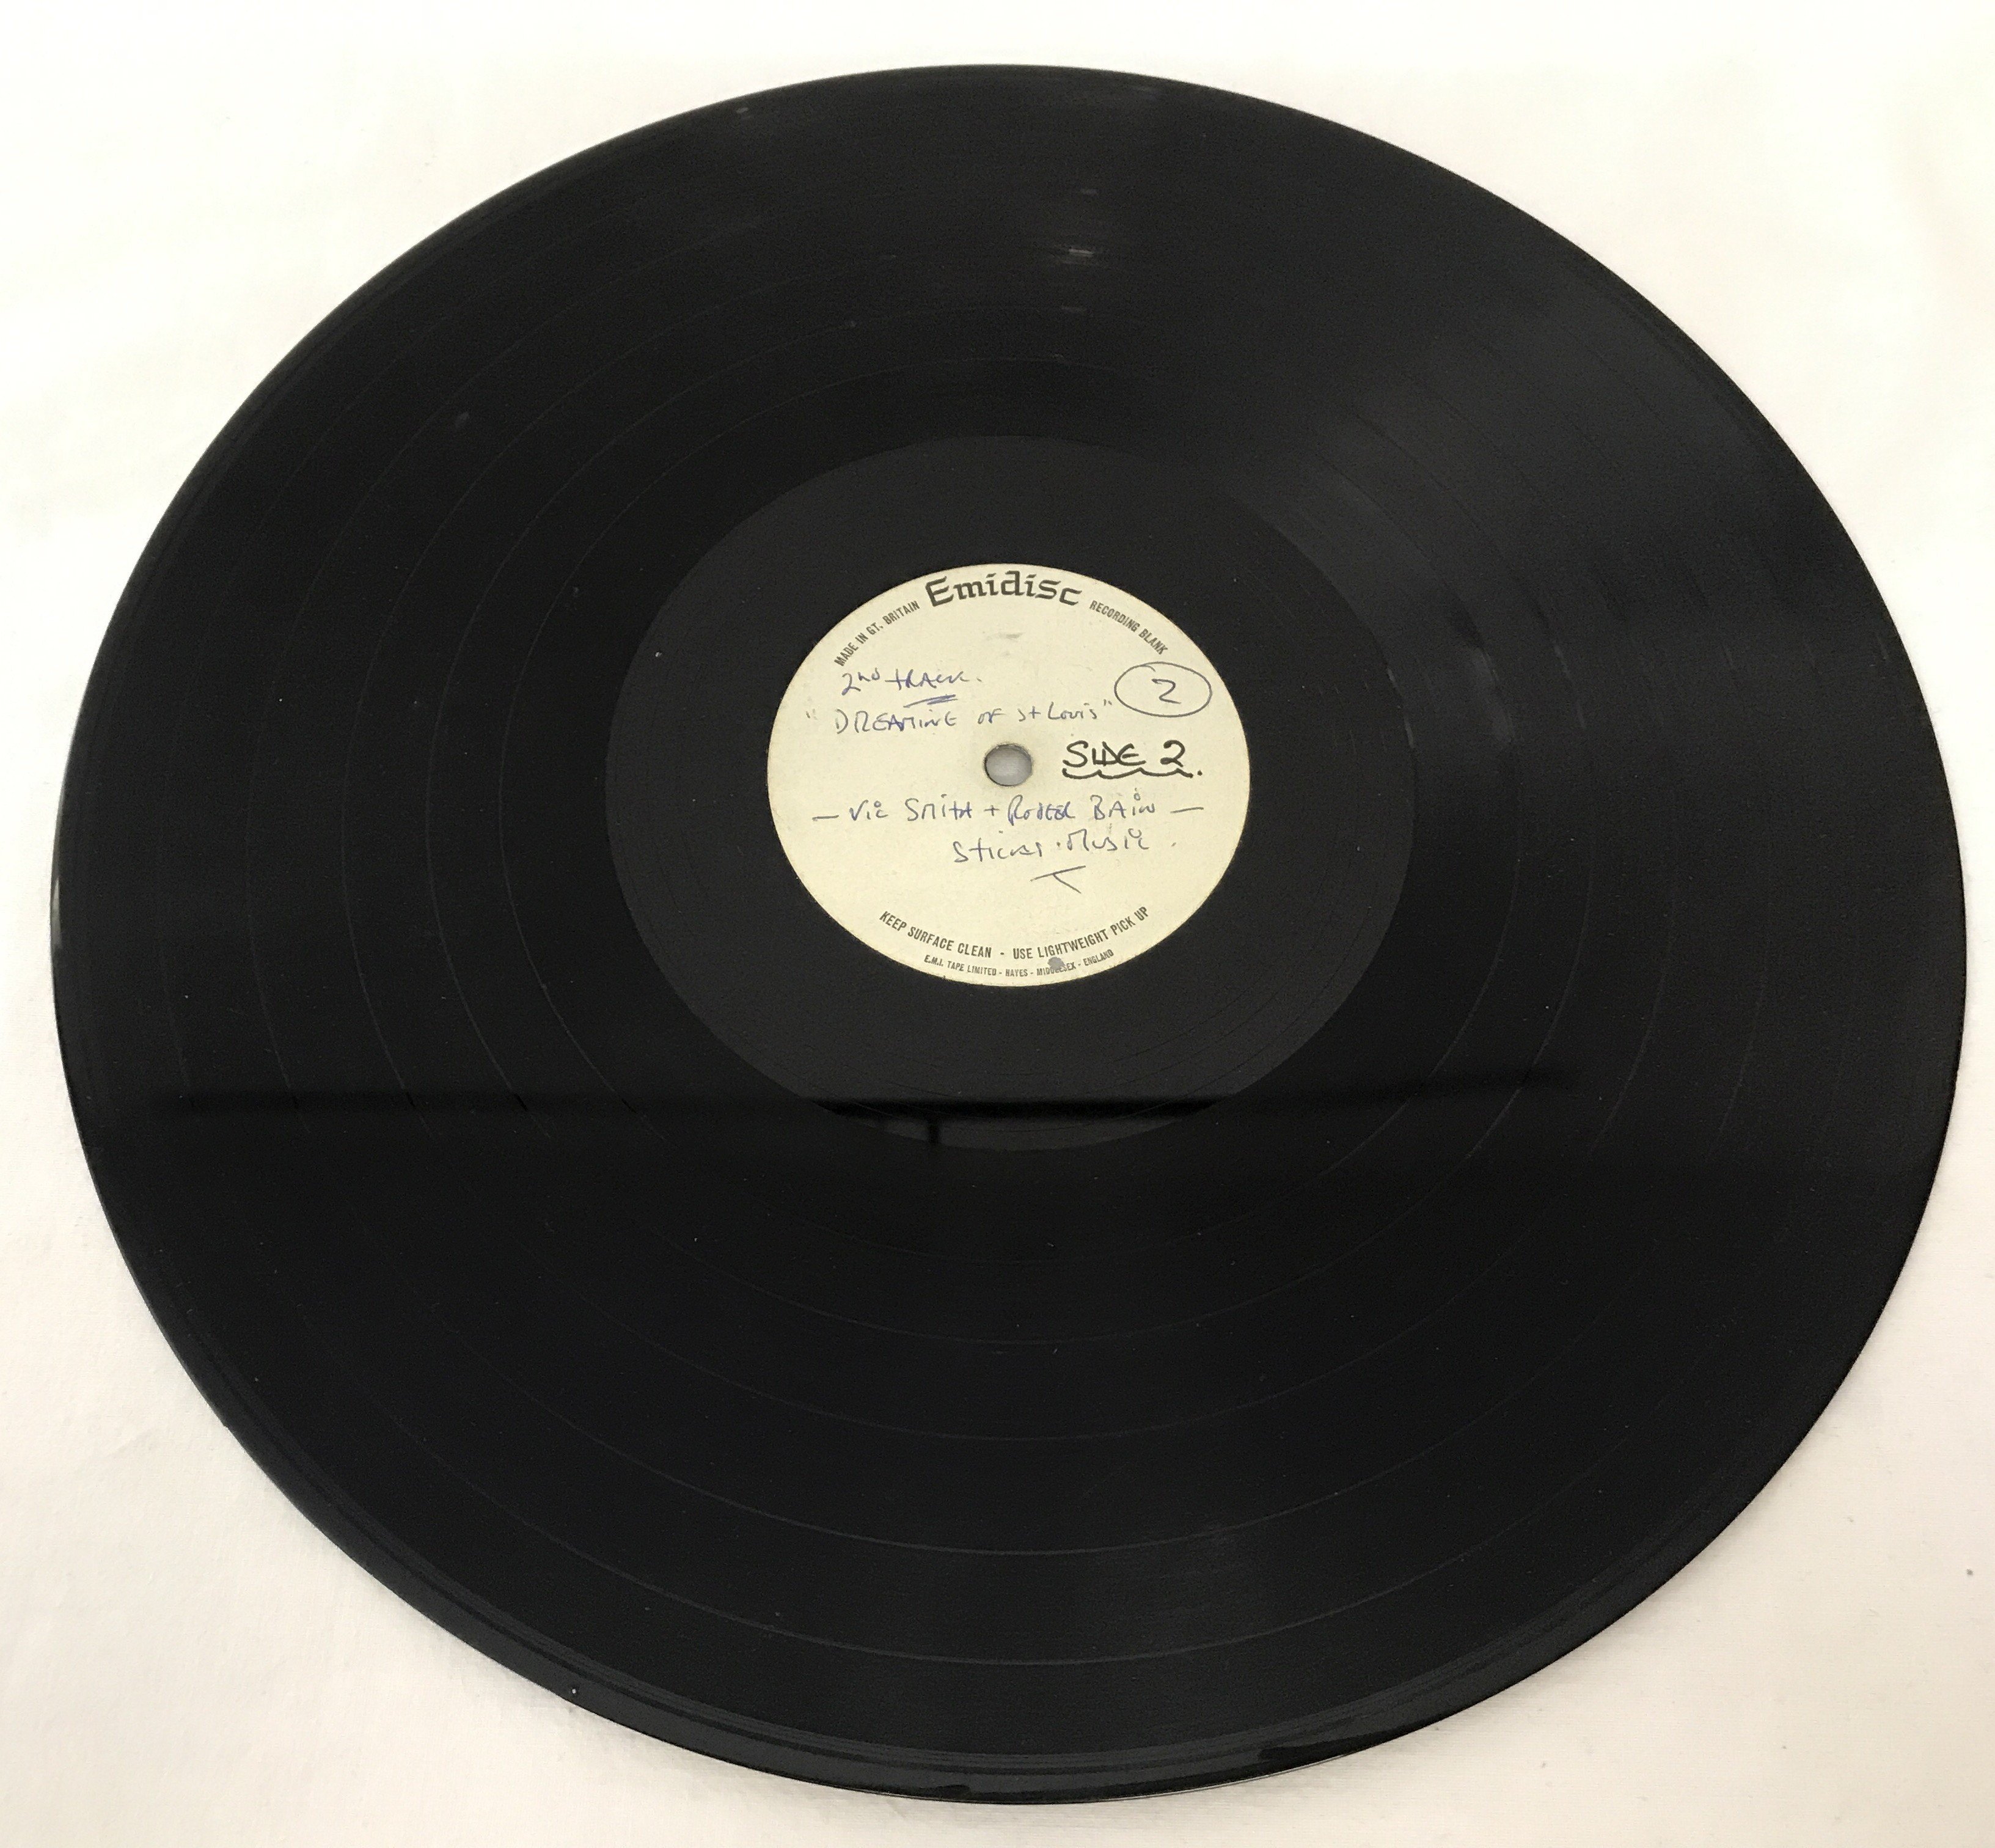 "Lot 34 - 12"" rare, early Billy Fury demo record. Recorded onto an Emidisc Acetate."